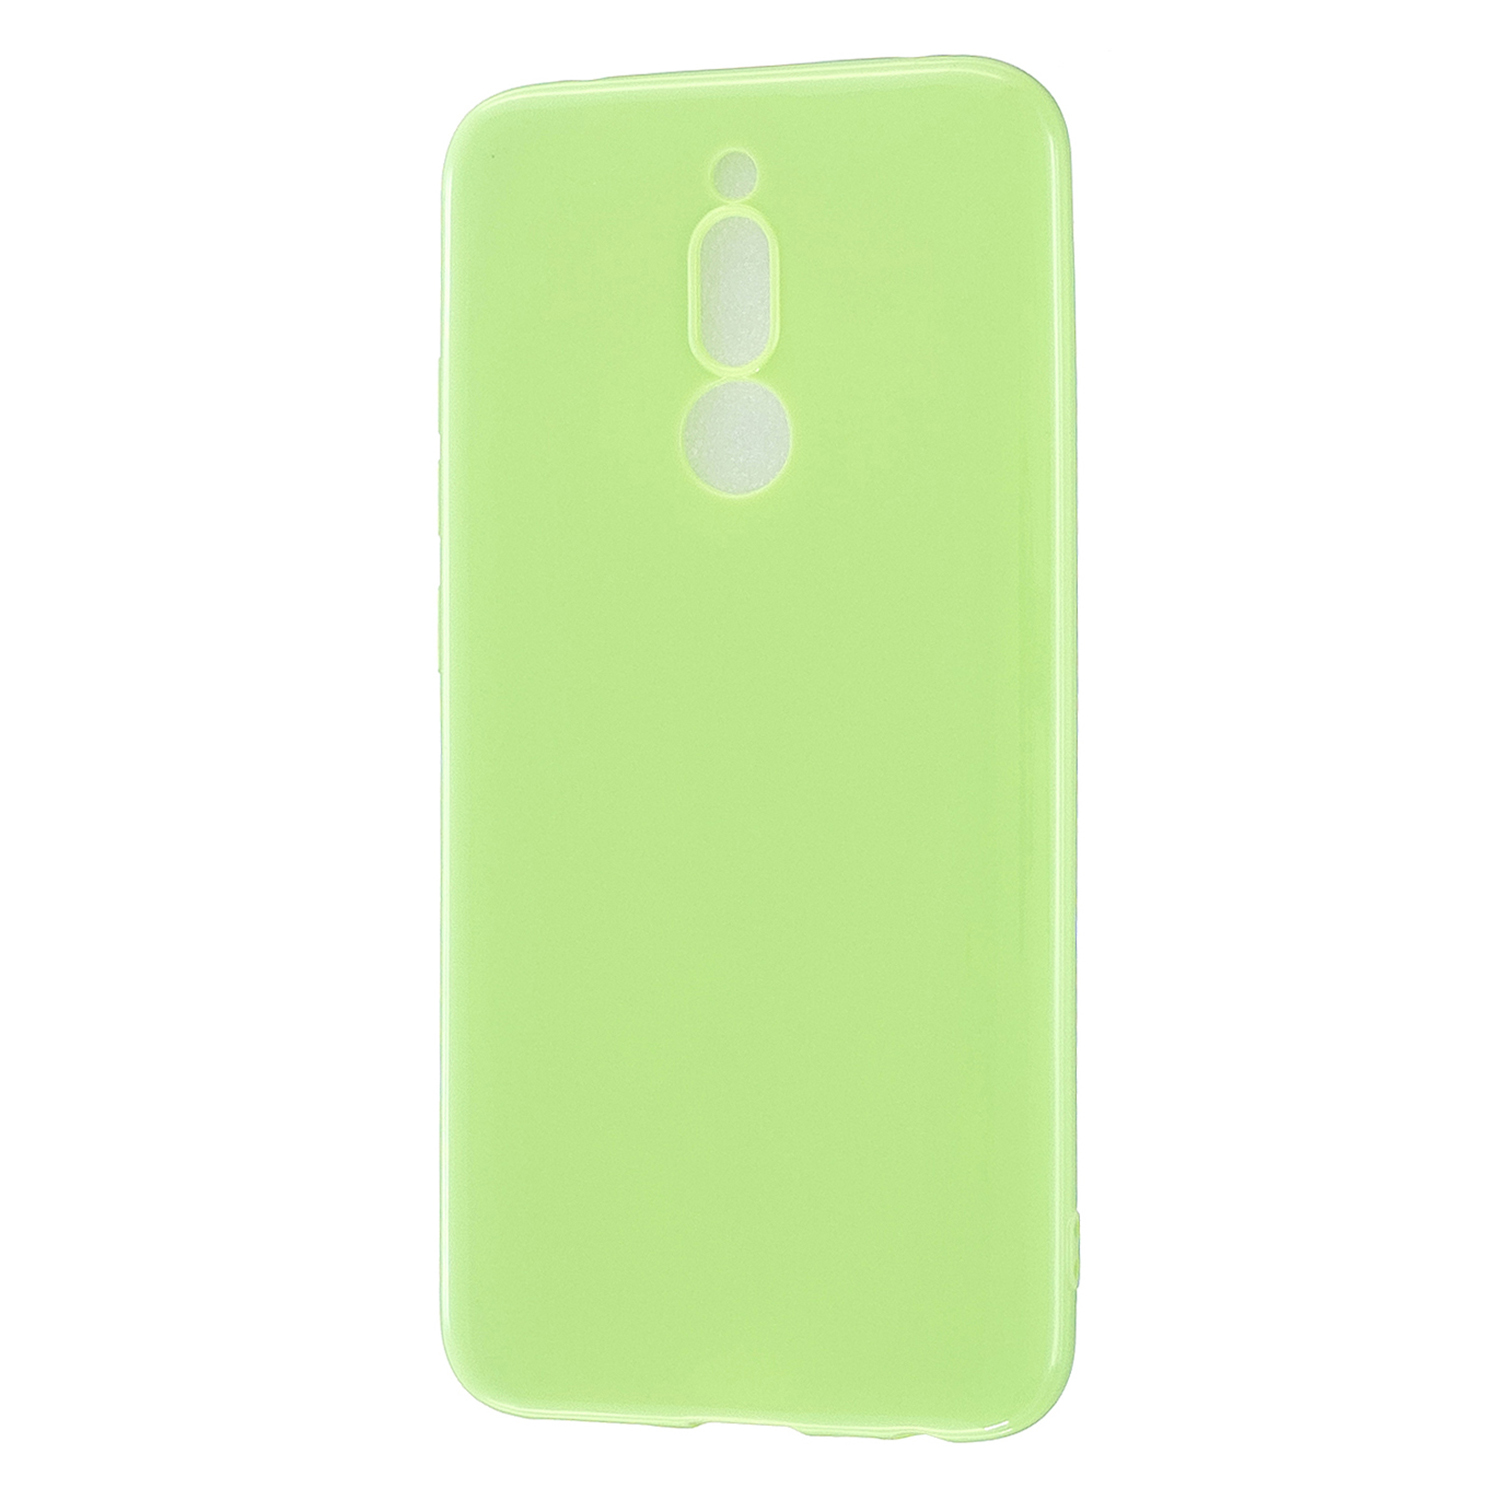 For Redmi 8 / Redmi 8A Cellphone Cover Glossy TPU Phone Case Defender Full Body Protection Smartphone Shell Fluorescent green